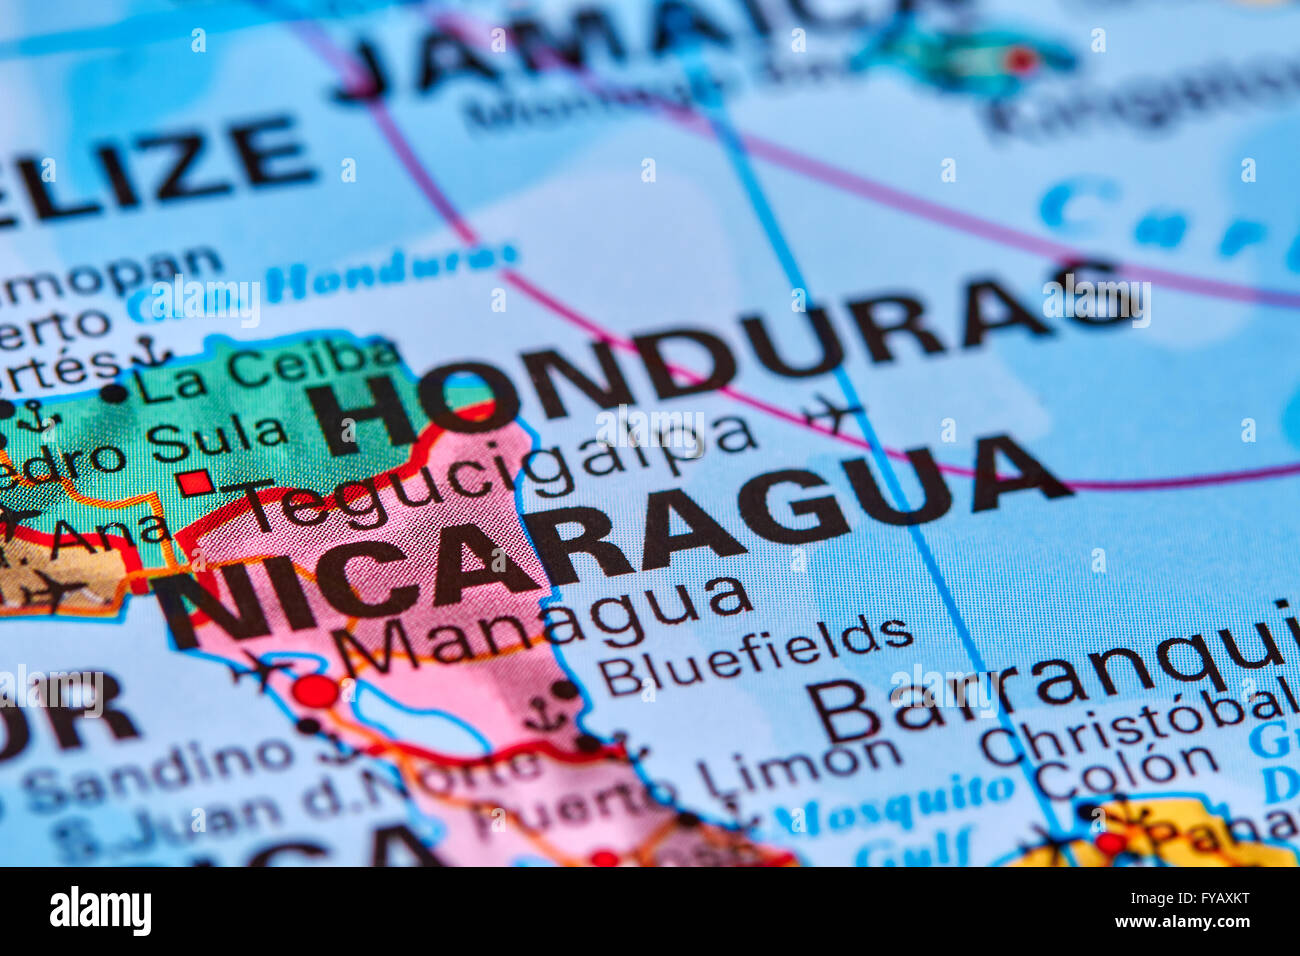 Nicaragua Country In Central America On The World Map Stock Photo